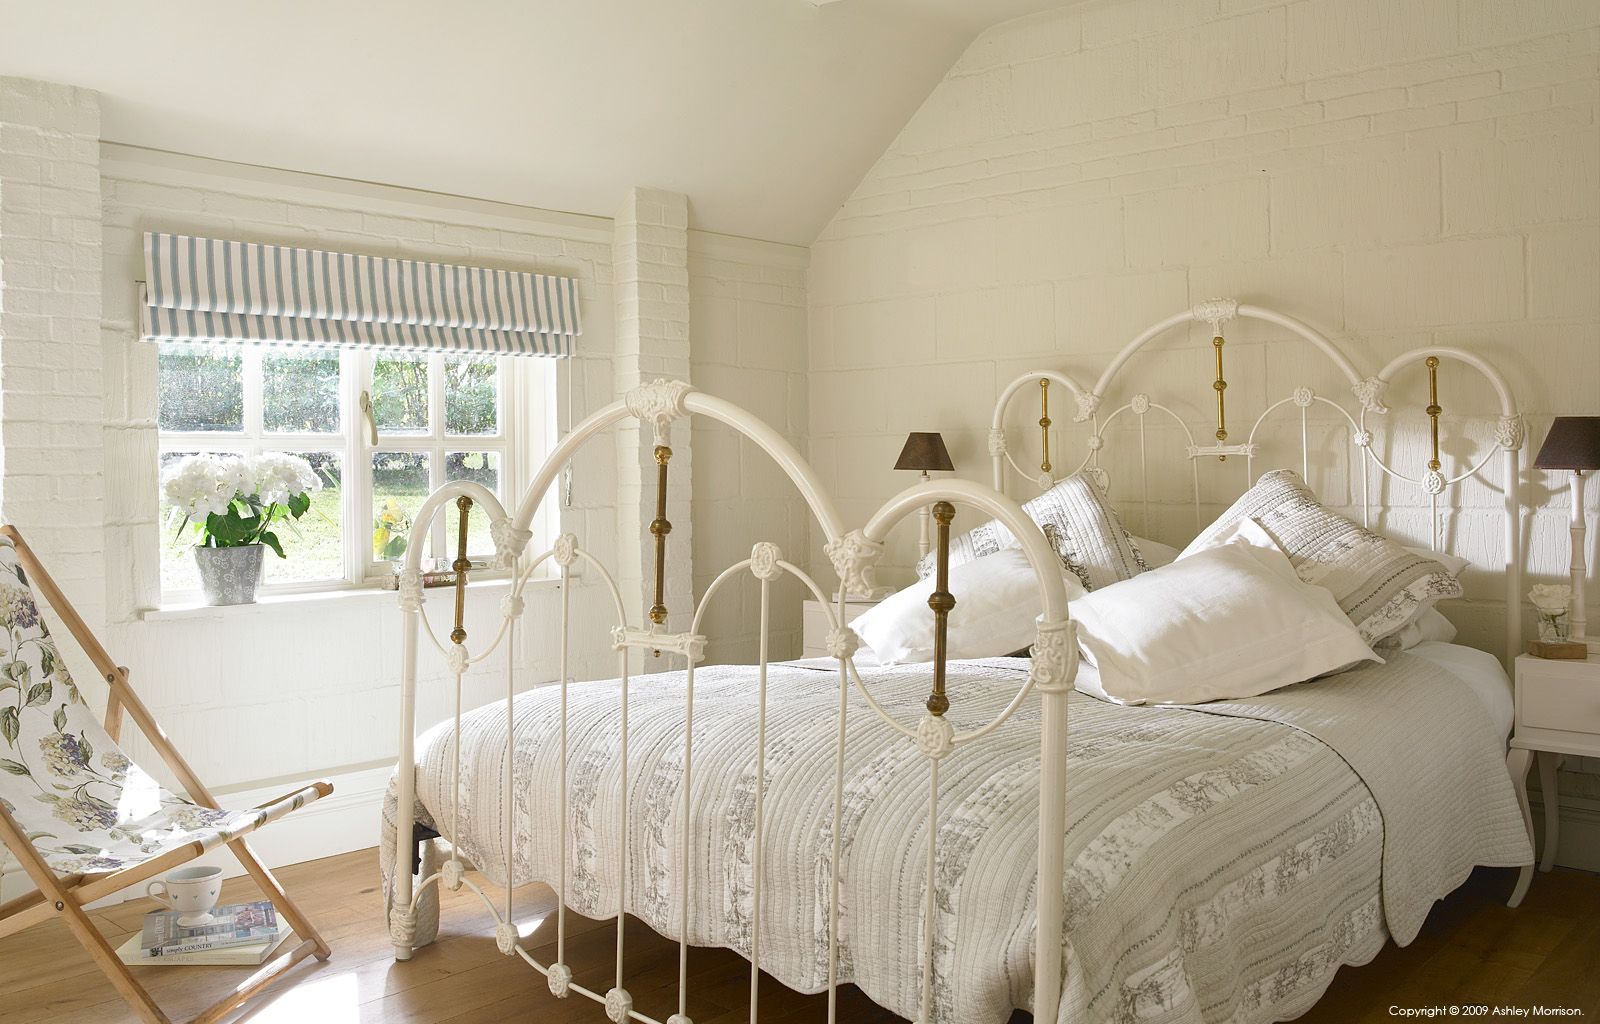 Guest bedroom in Beth & Jason Cooper's barn near Guildford